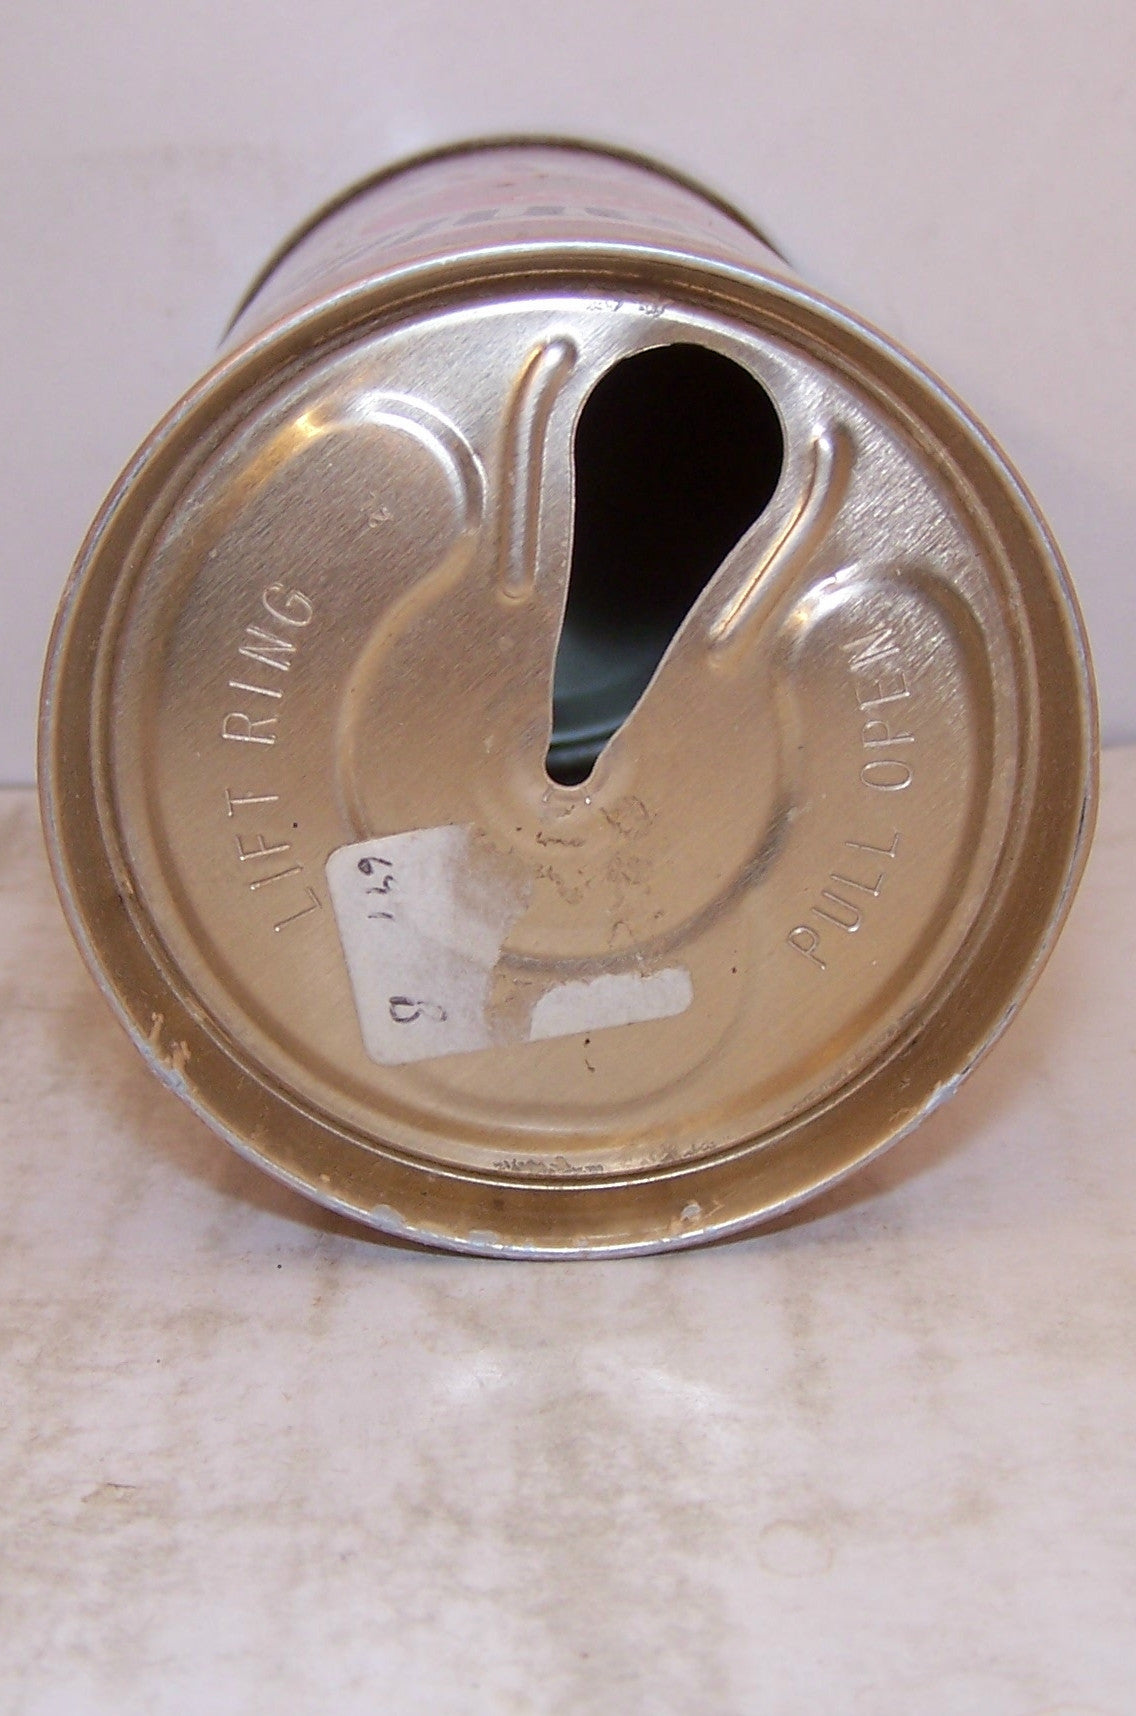 Ballantine Bock Beer, USBC II 36-39 enamel, Grade 1/1+ Sold on 2/3/18